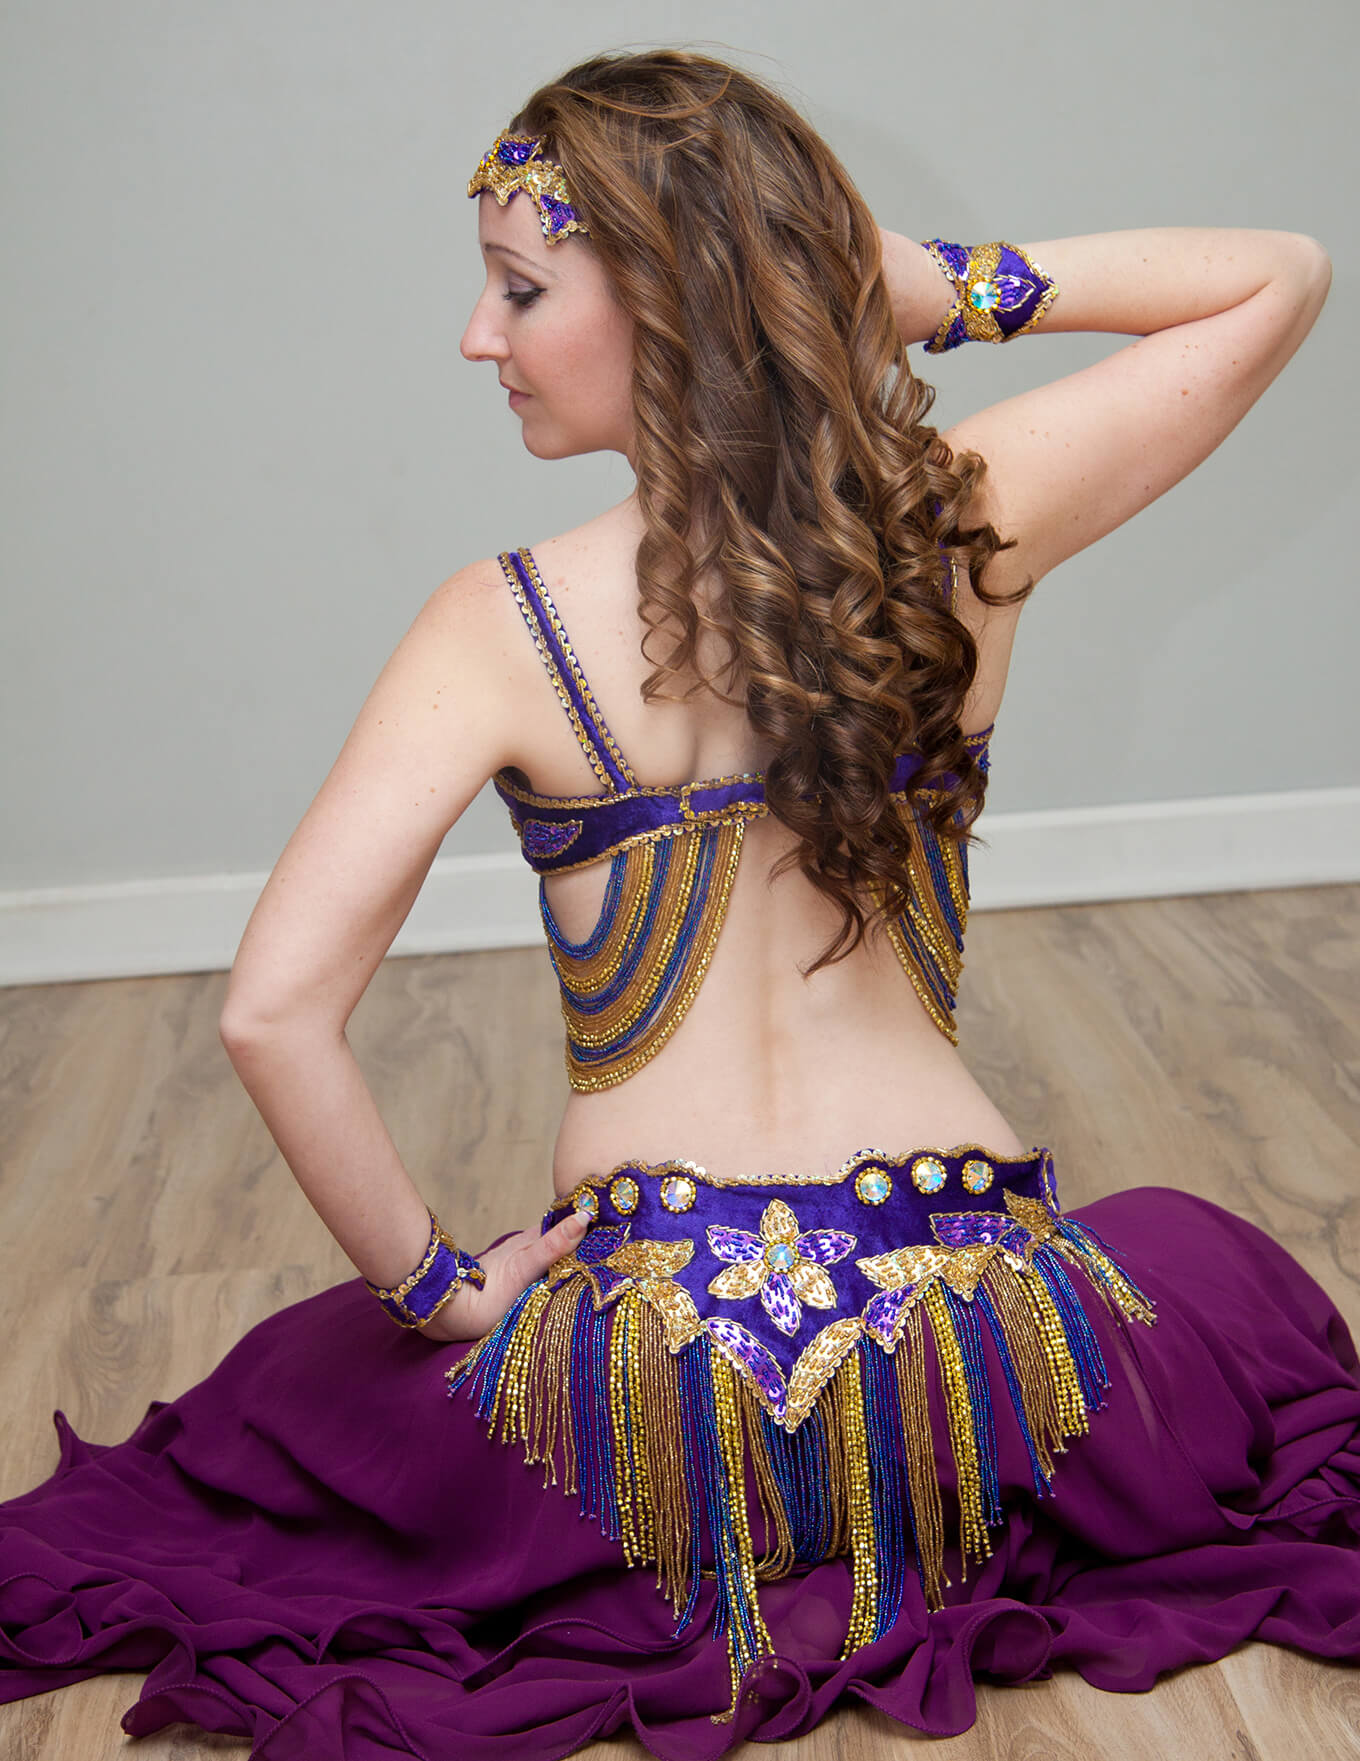 Donna in a purple belly dance outfit